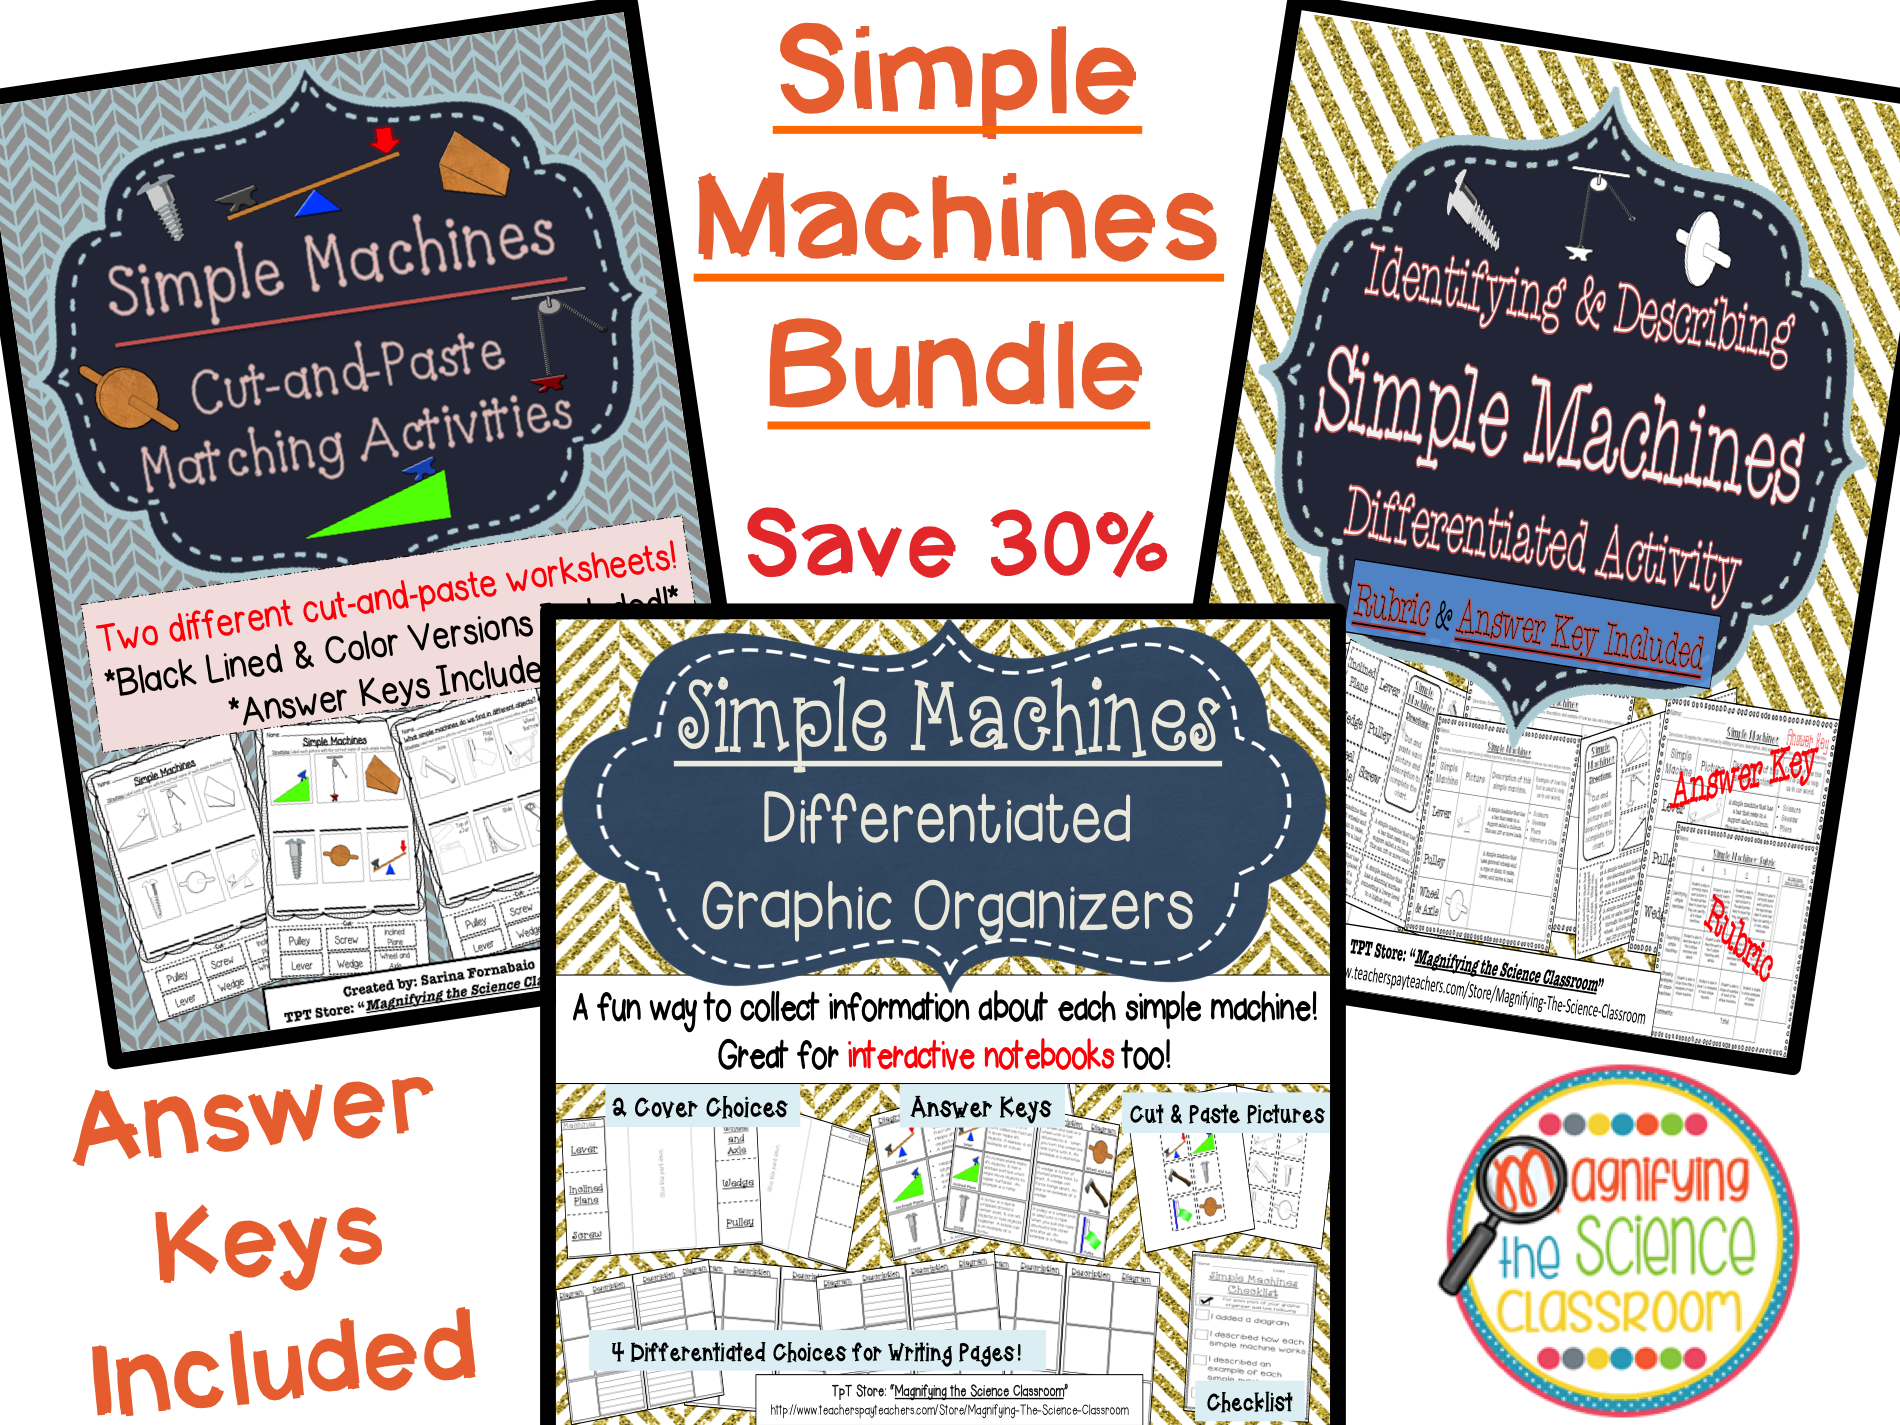 Simple Machines Activity Bundle